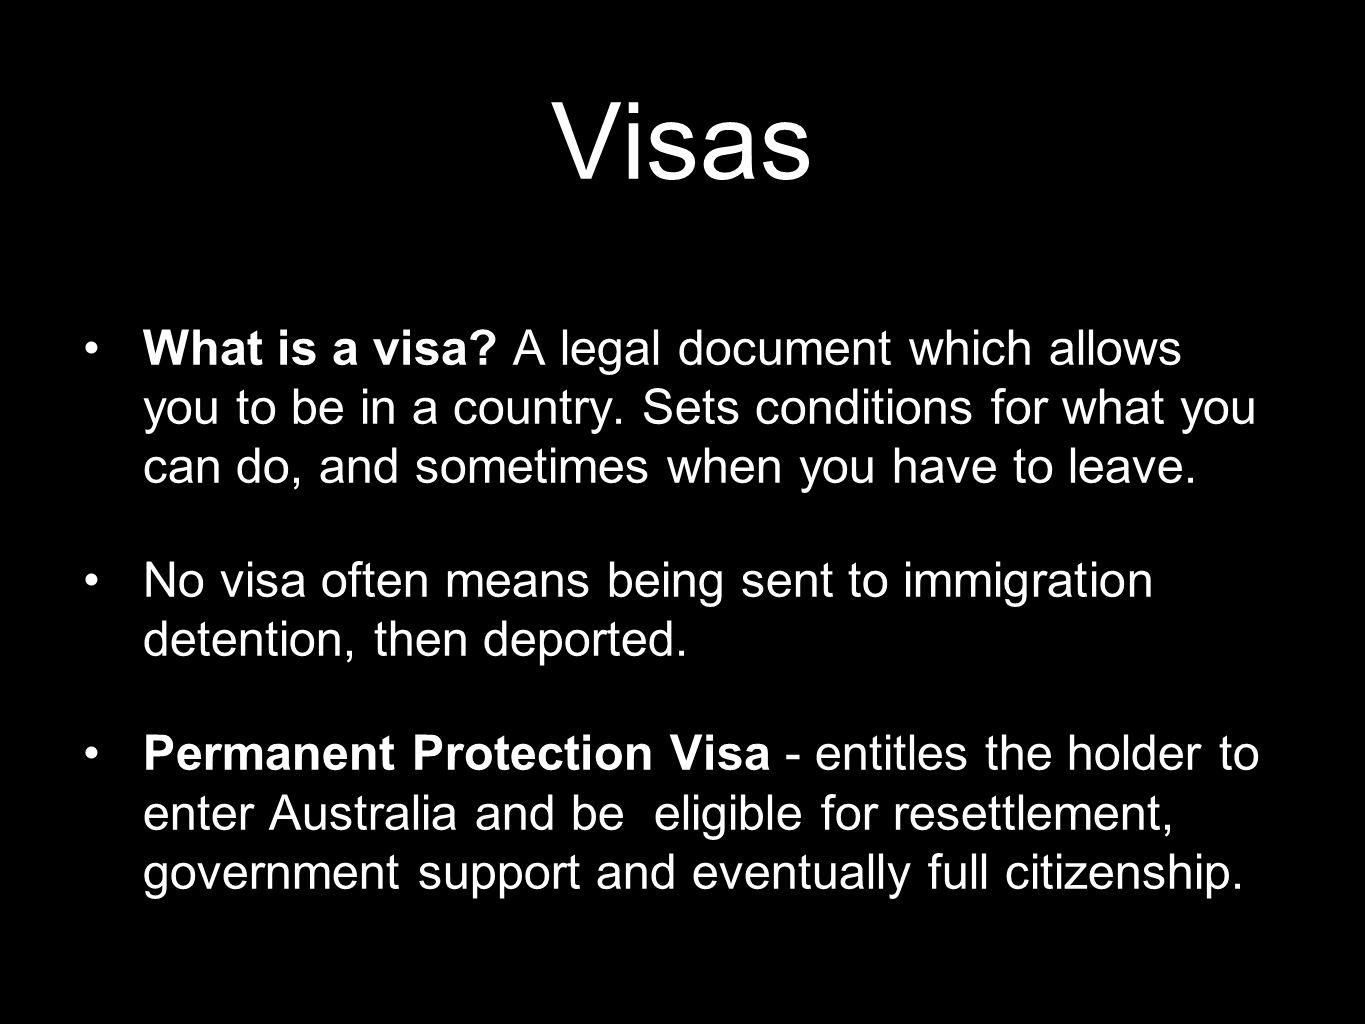 Visas What is a visa? A legal document which allows you to be in a country. Sets conditions for what you can do, and sometimes when you have to leave.